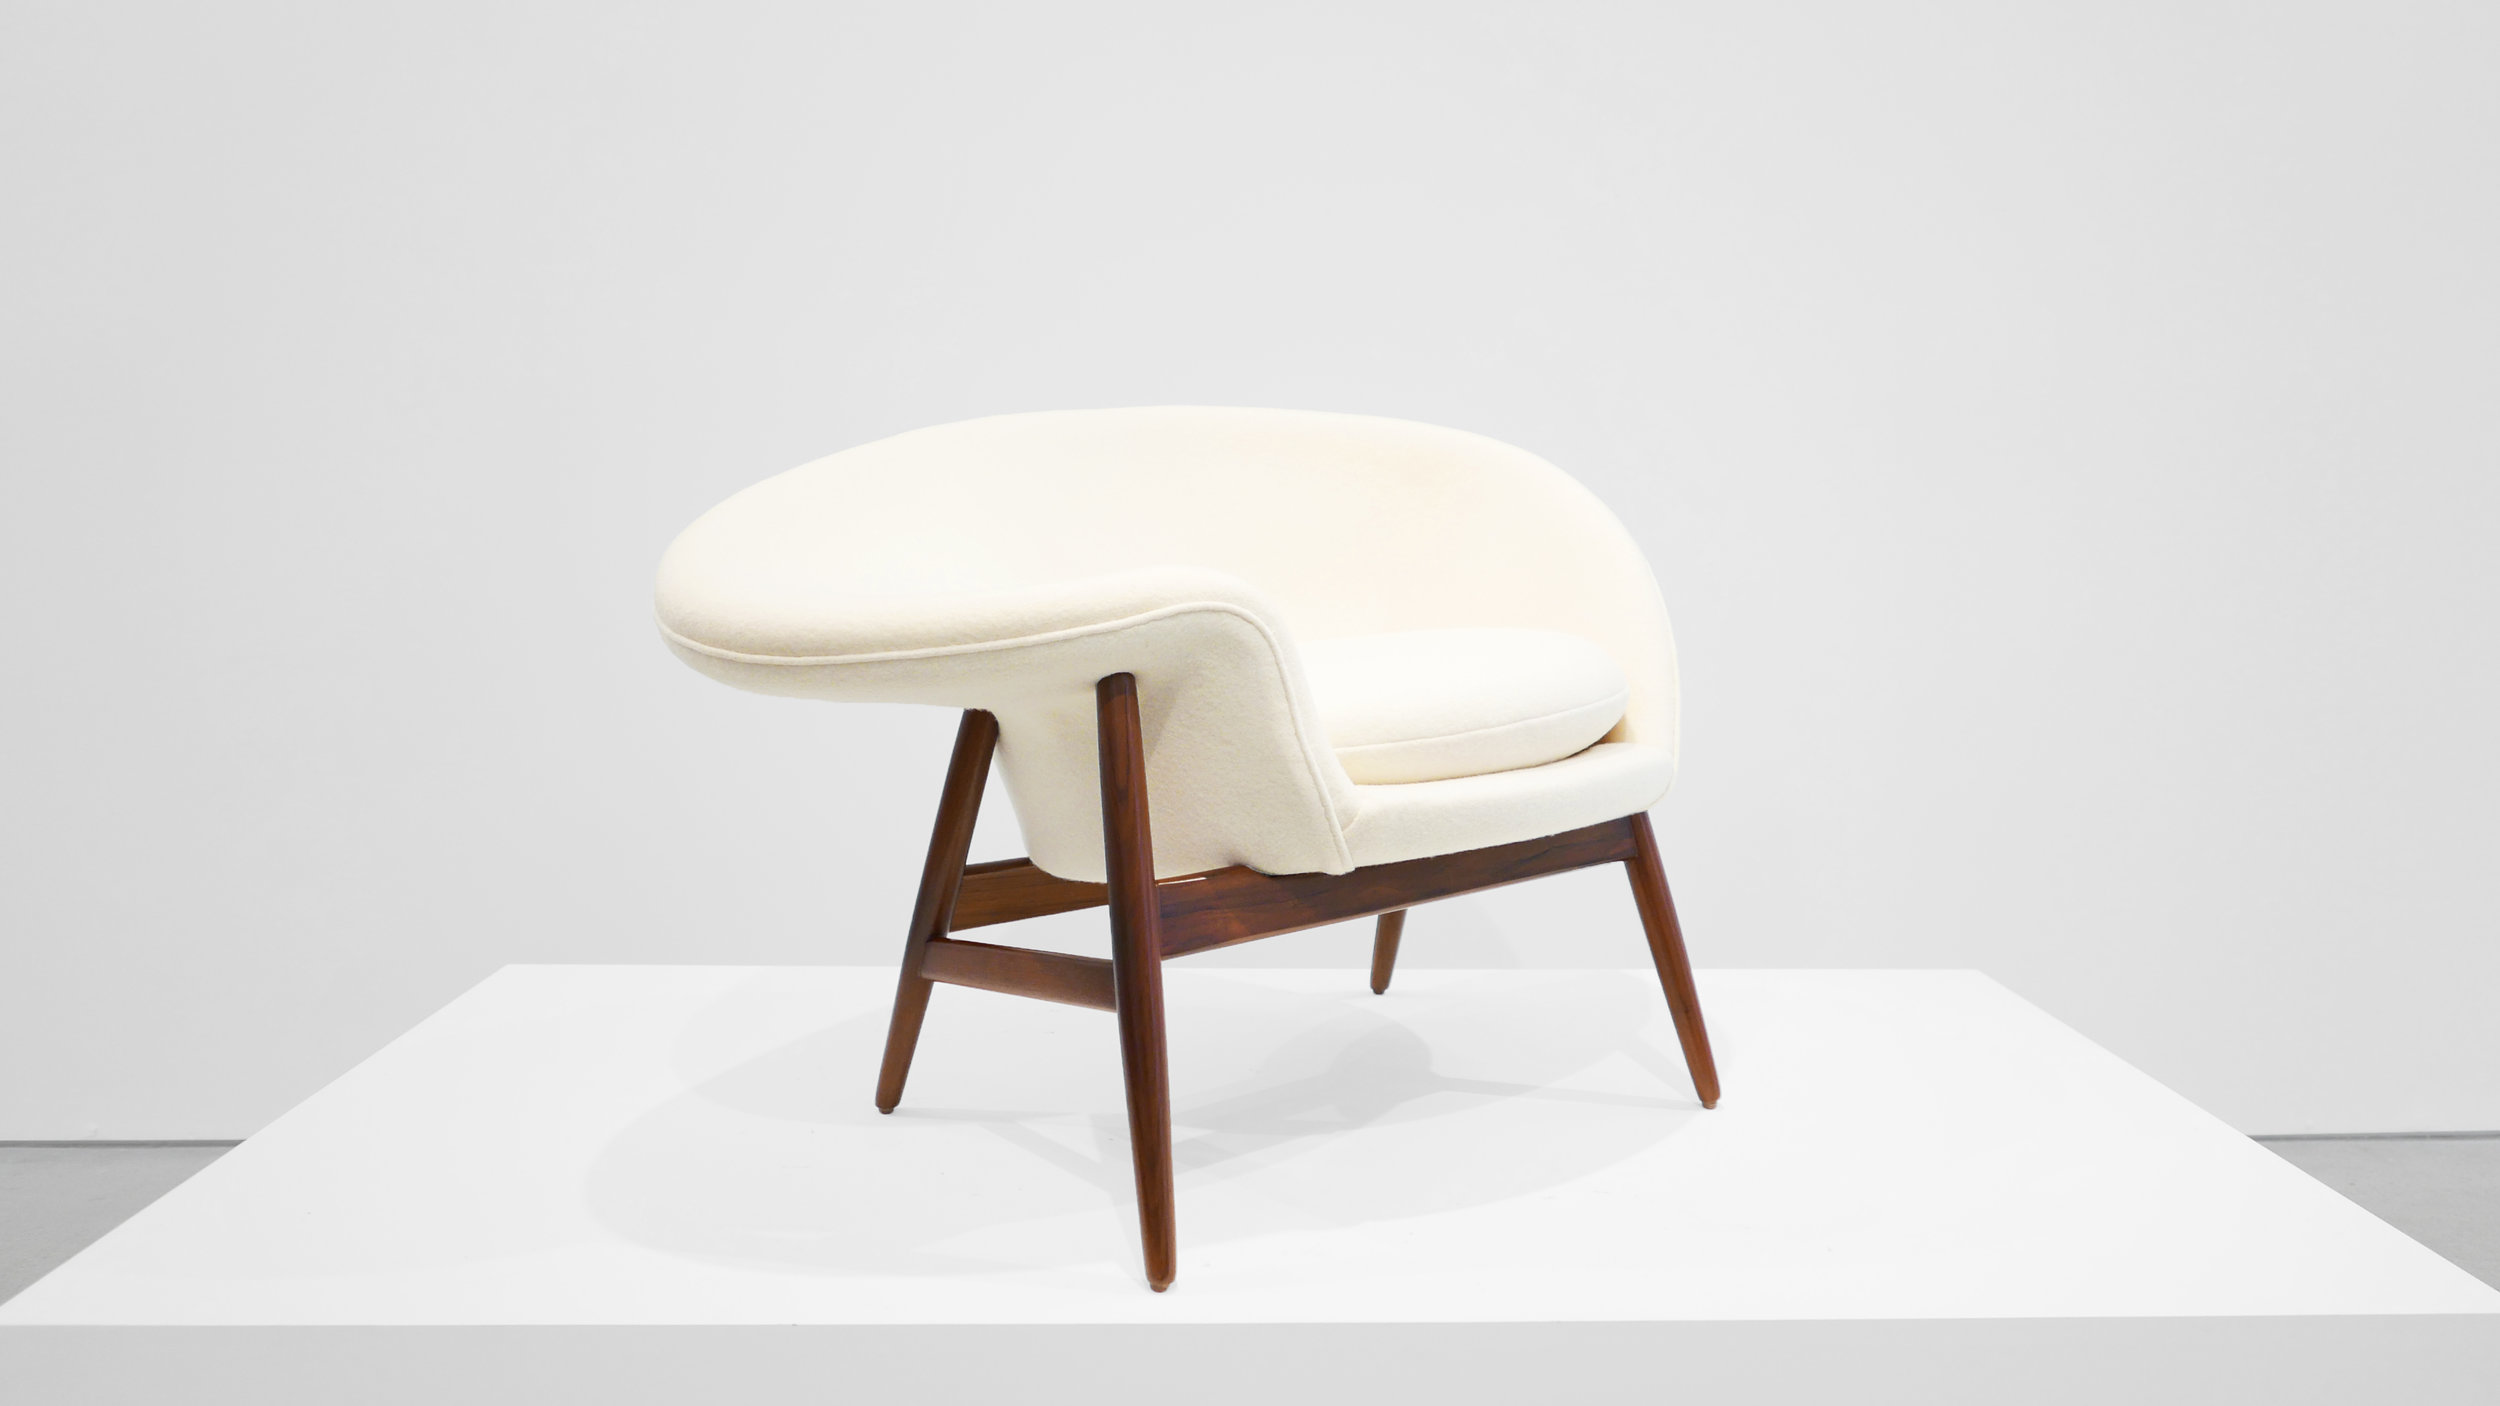 Hans Olsen %22Fried Egg%22 Chair, c. 1956, Holland & Sherry White Chamonix Boiled Wool, Teak, 26 H x 40 W x 30 D inches_1.jpg